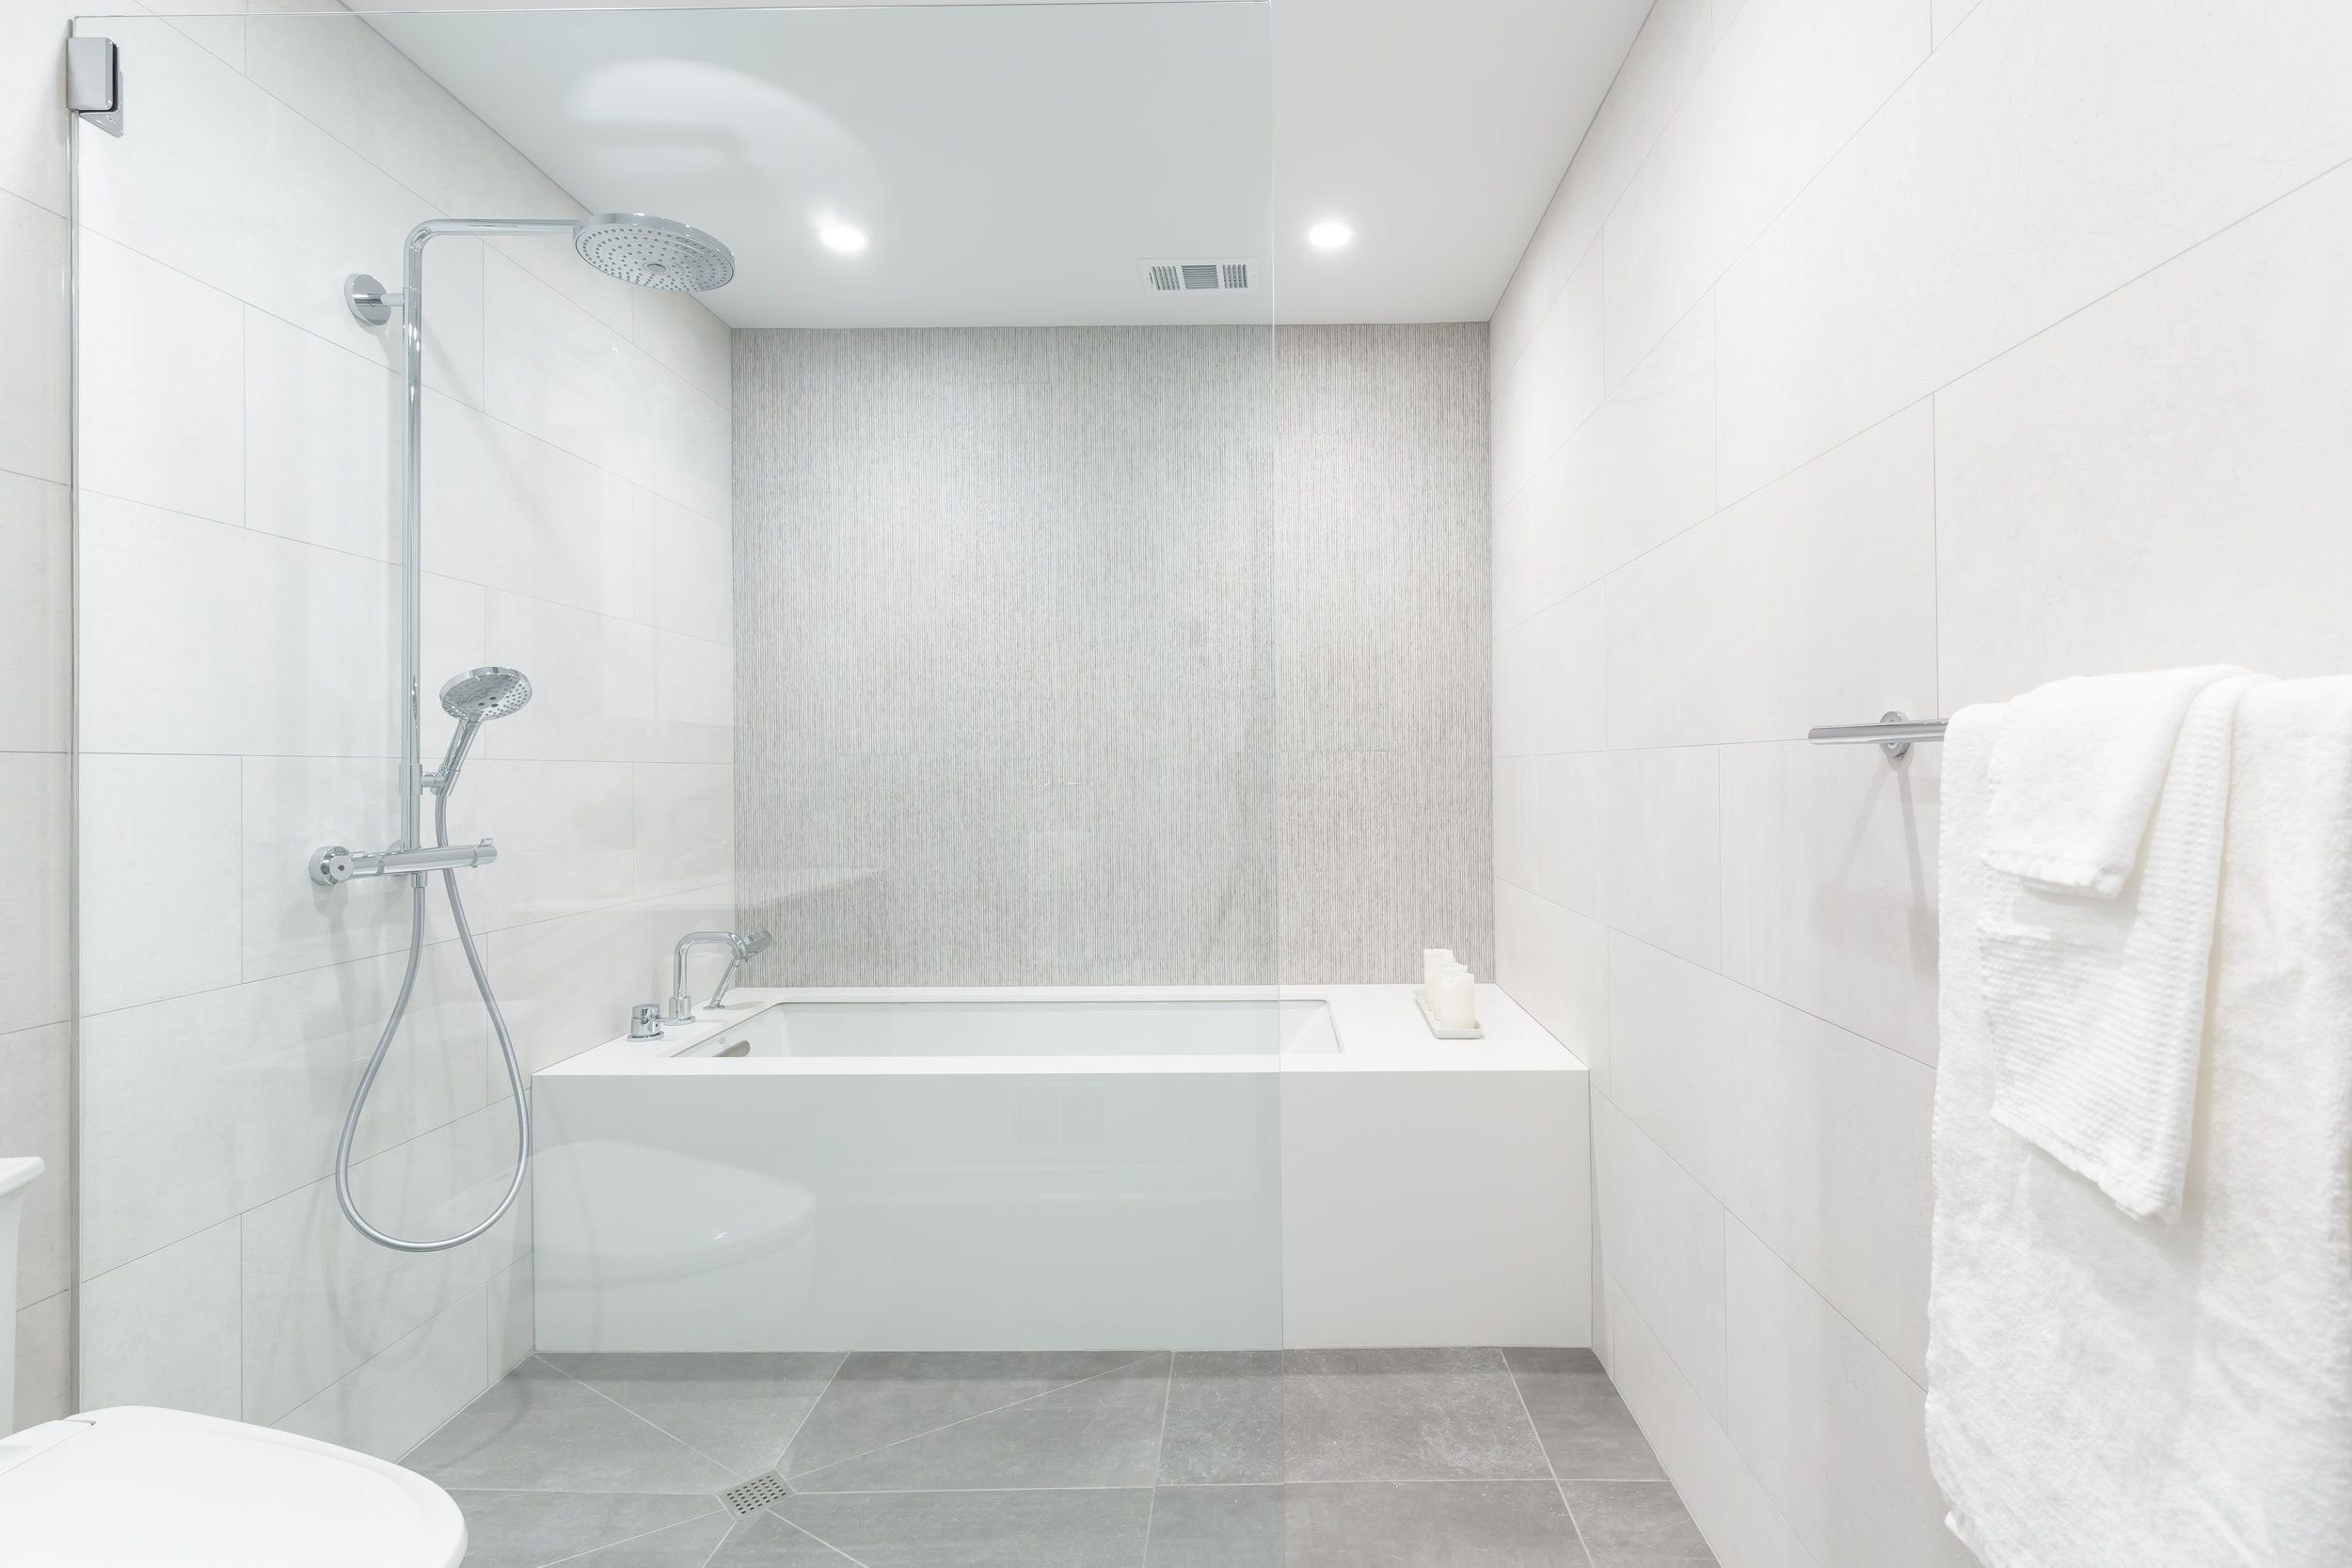 shower egg roman cheap tub tiles ca of bathtub with art waterfall ideas faucet faucets robins hand color